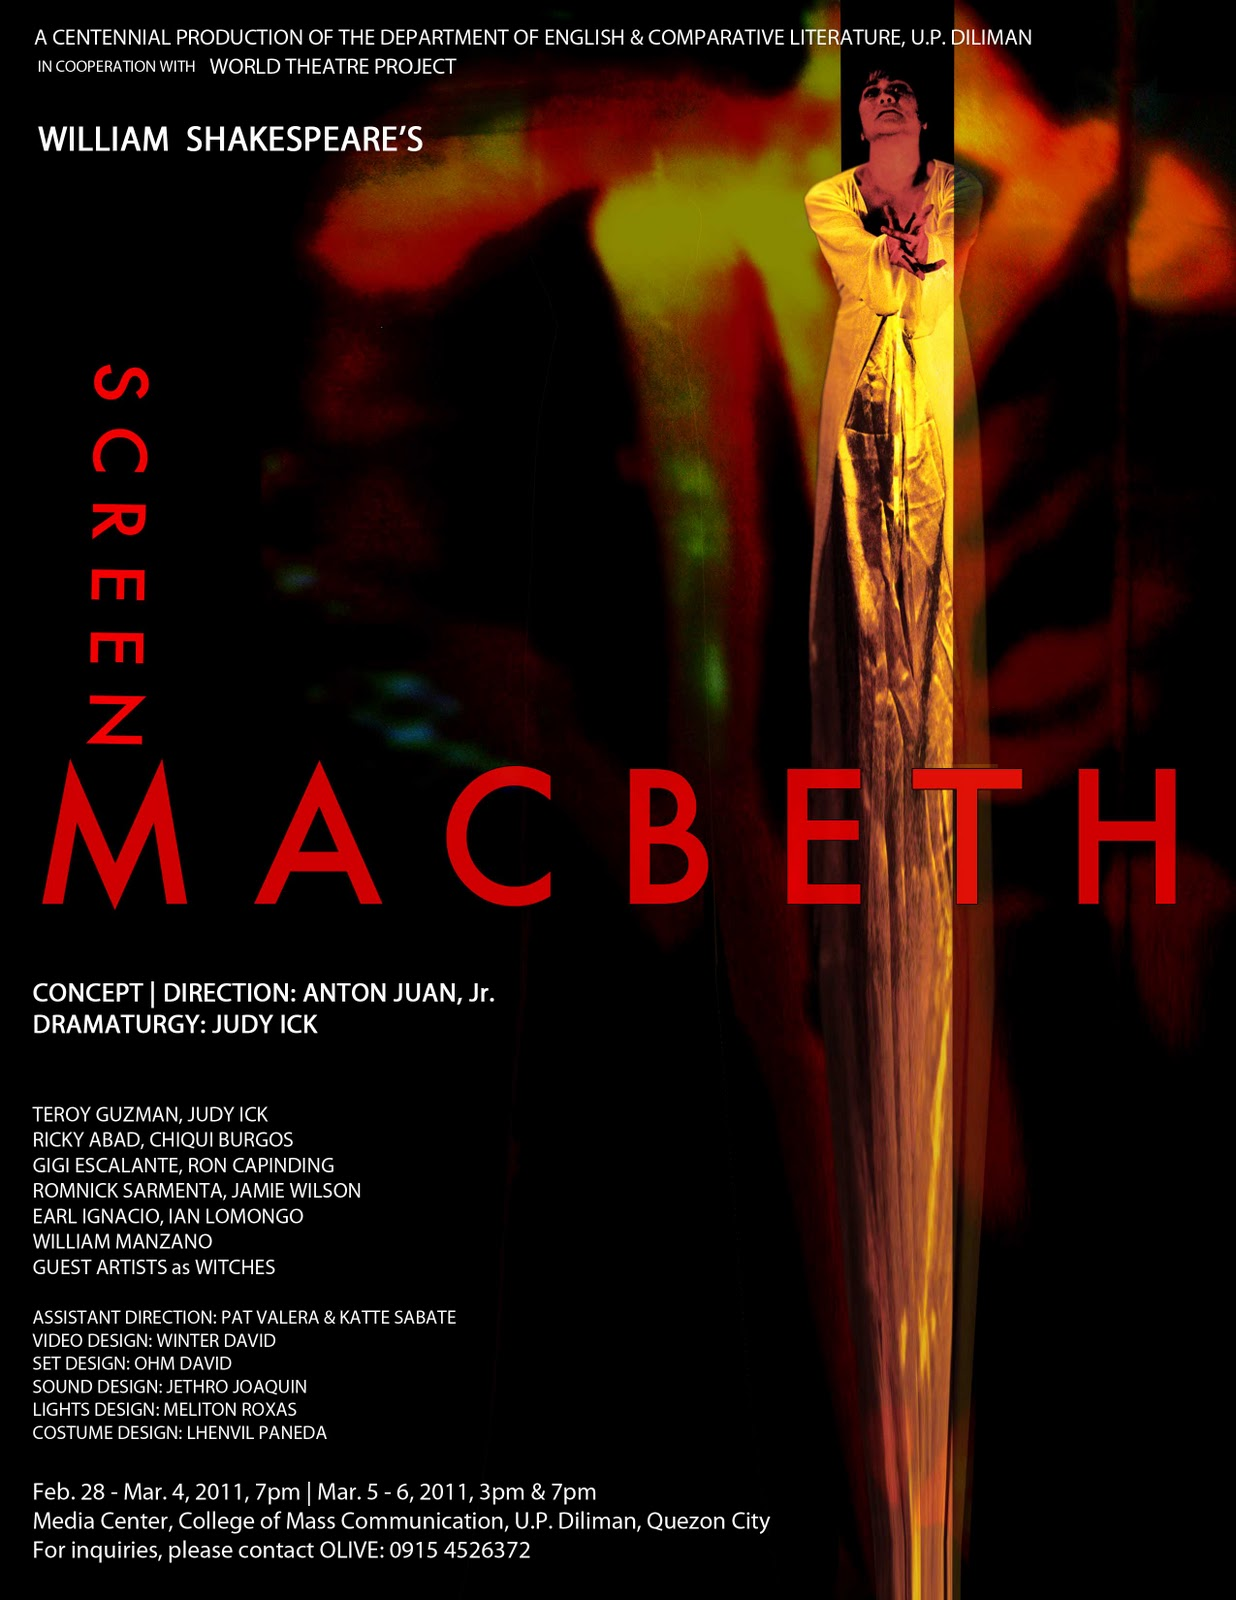 macbeth in 21 century english Included are: 6 aqa-exam style questions for macbeth, with an accompanying extract this will be updated with more suggested responses too key quotations taken from the entire play, relating to a range of characters and themes that could be.